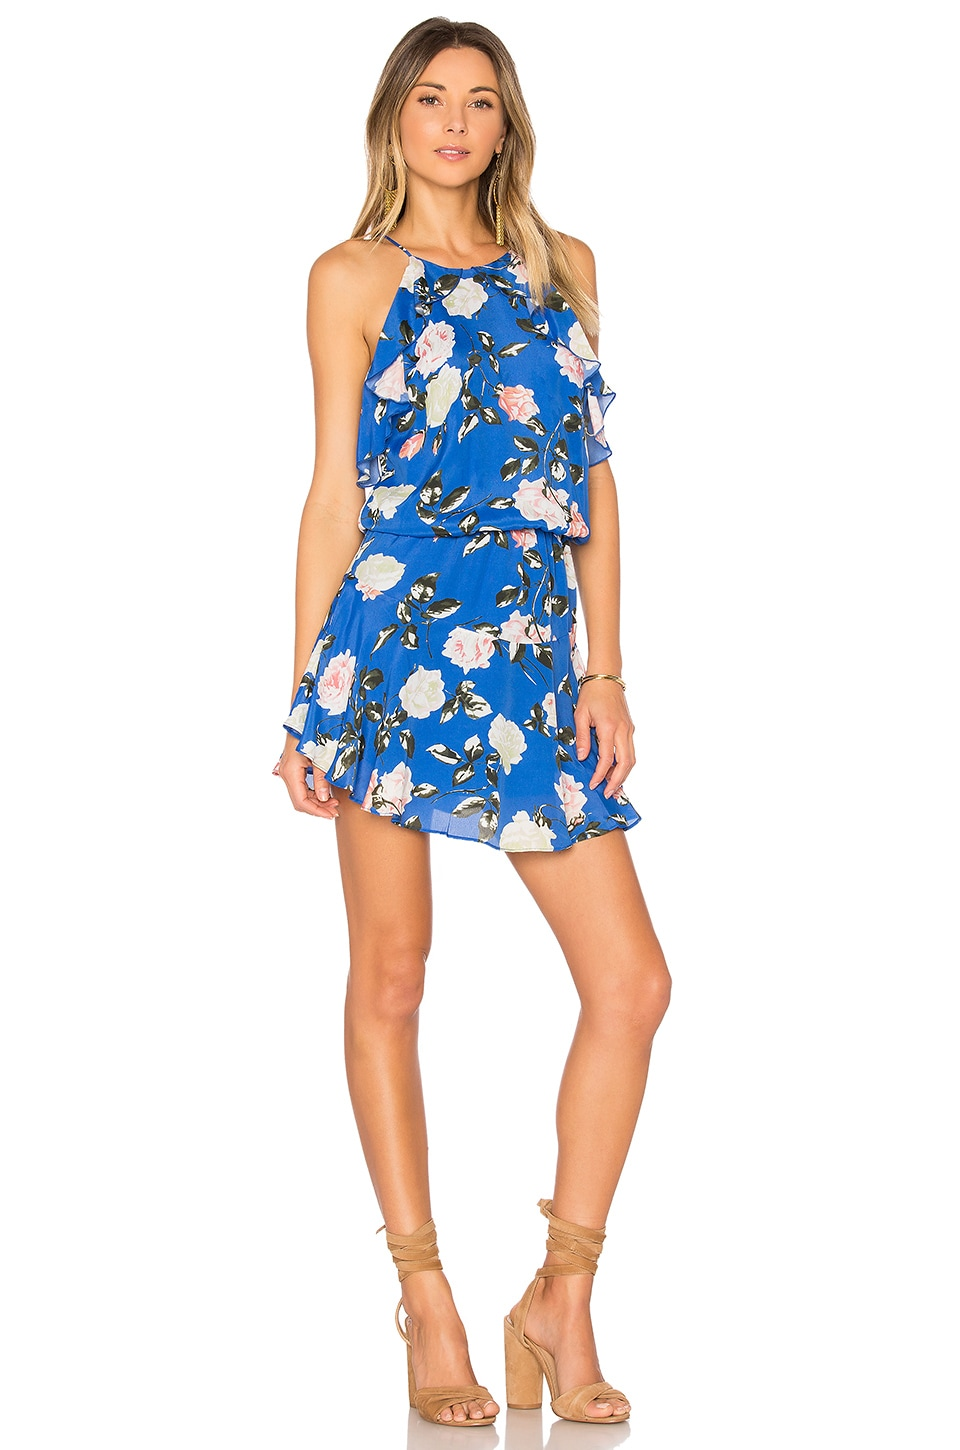 Karina Grimaldi Lulu Print Mini Dress in Blue Rose